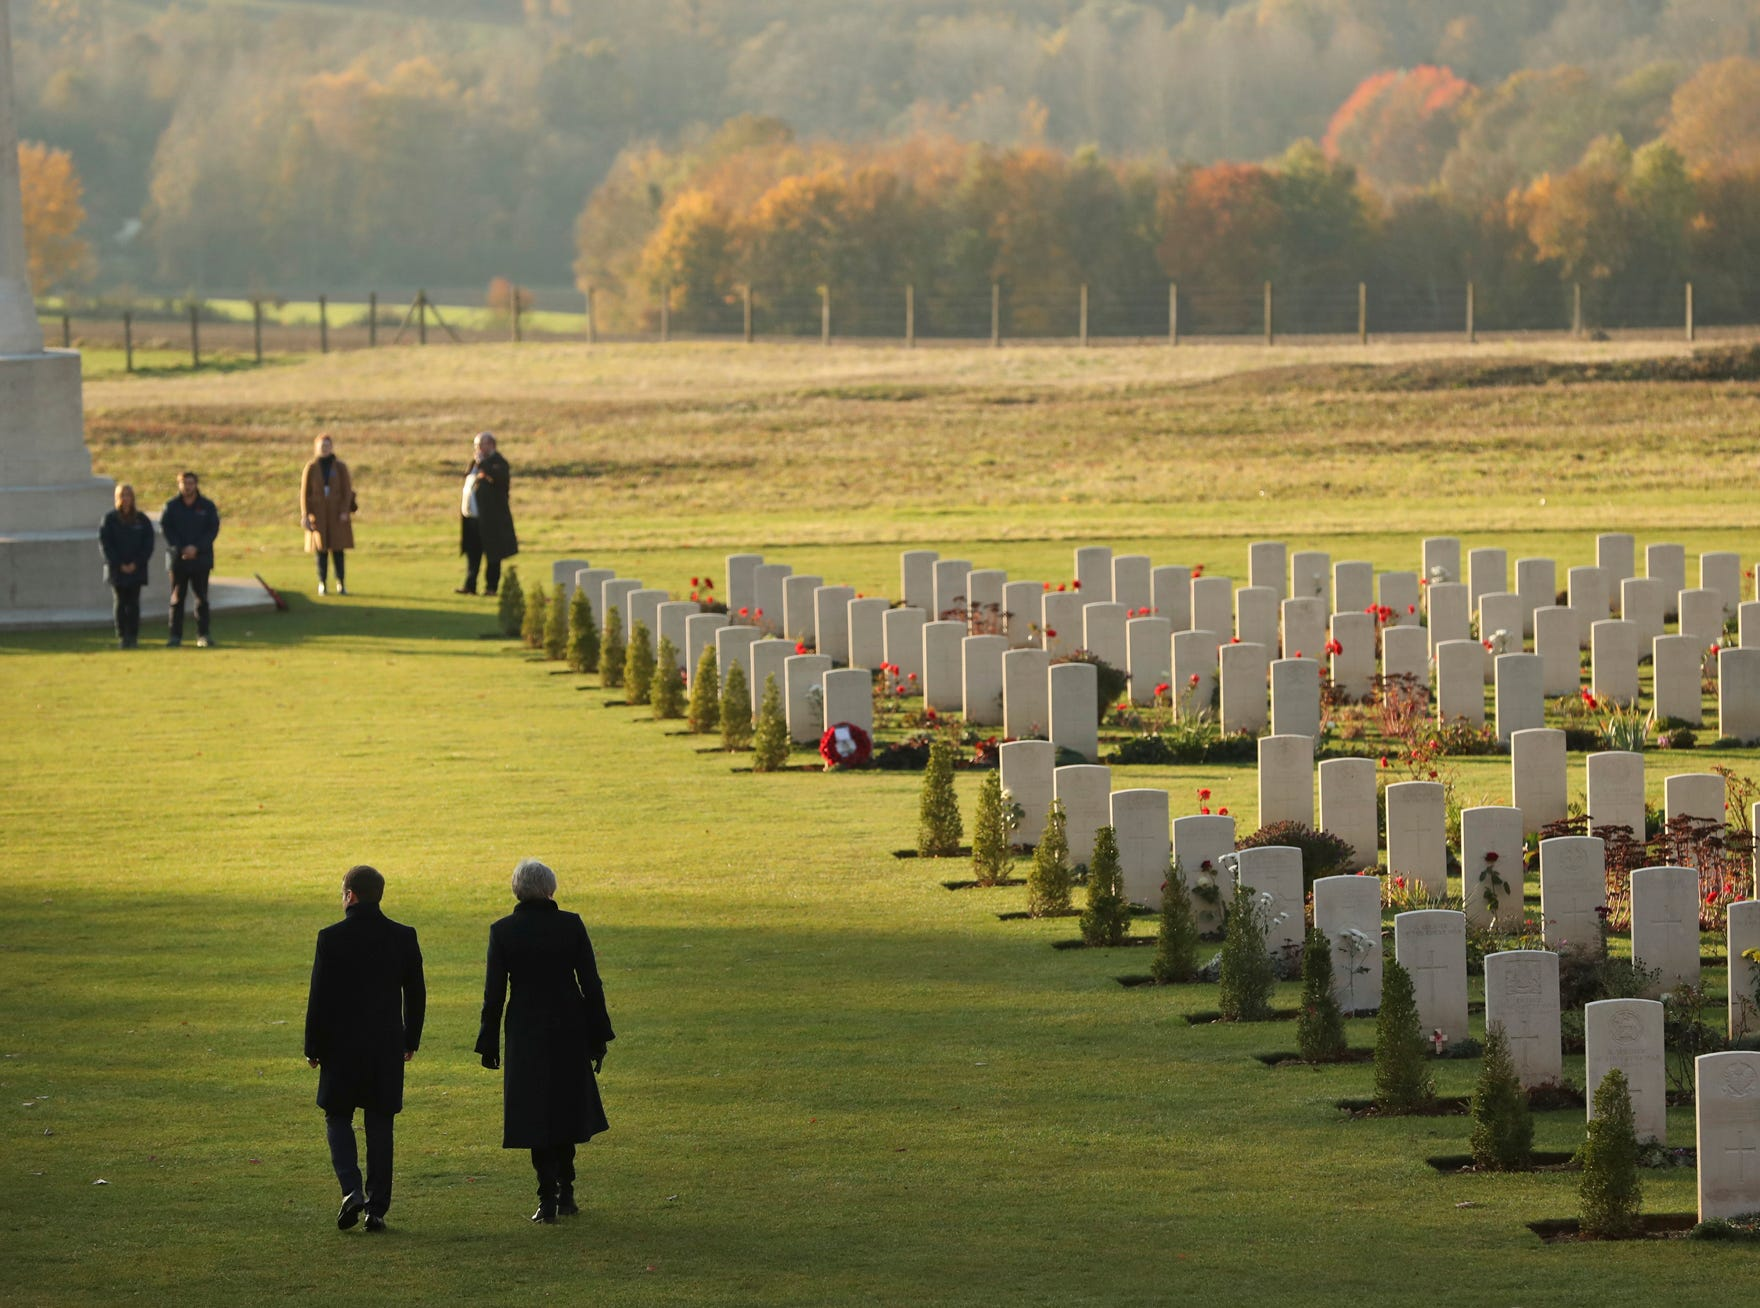 British Prime Minister Theresa May, right, and French President Emmanuel Macron, left, walk together after laying wreaths at the World War I Thiepval Memorial in Thiepval, France, Friday, Nov. 9, 2018. The memorial commemorates more than 72,000 men of British and South African forces who died in the Somme. (AP Photo/Francisco Seco, Pool)